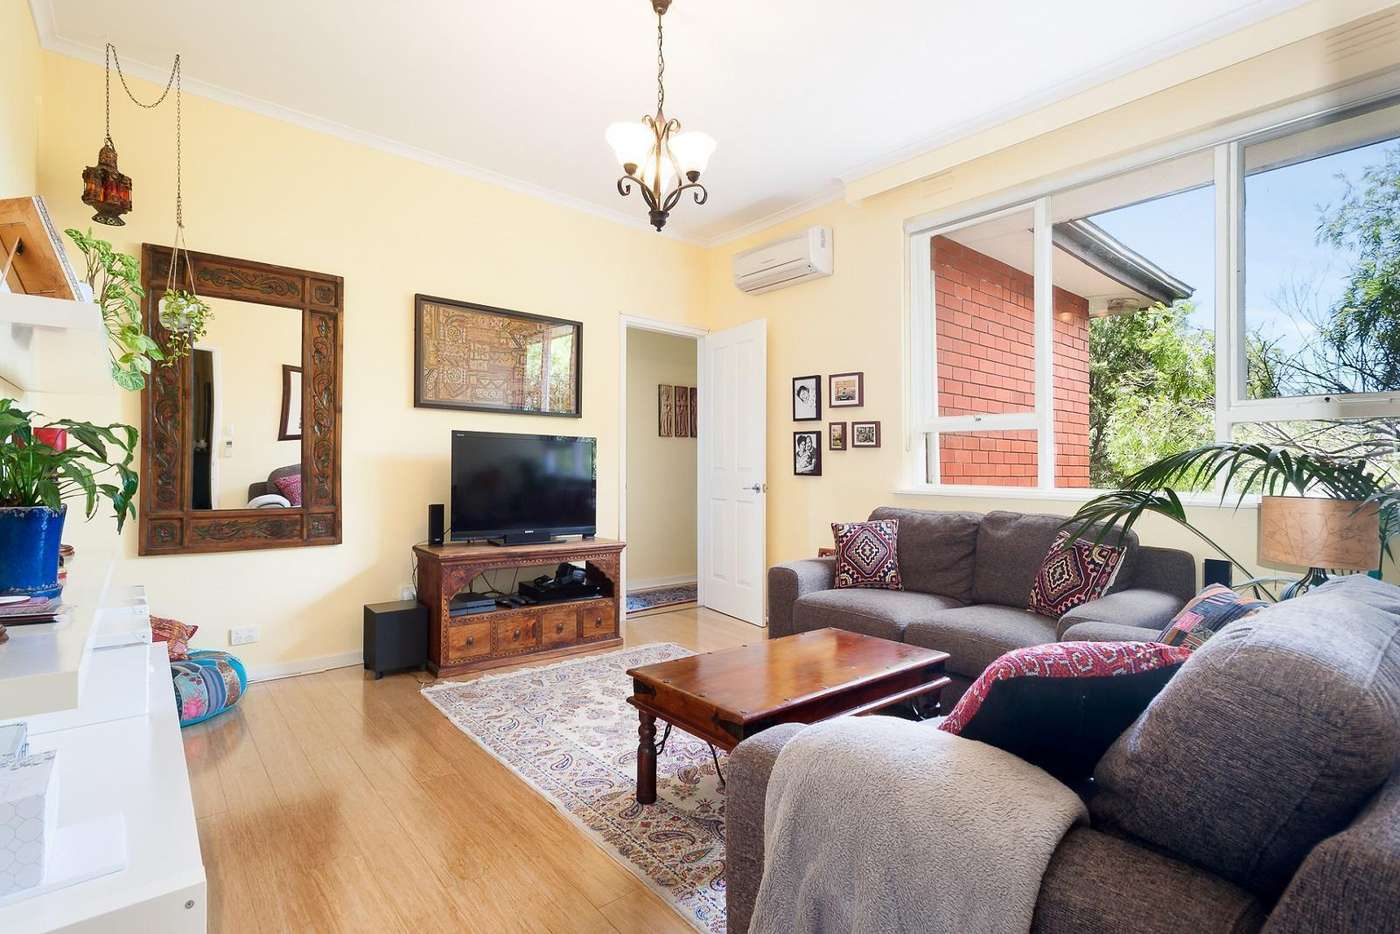 Main view of Homely apartment listing, 9/67 Pender Street, Thornbury VIC 3071